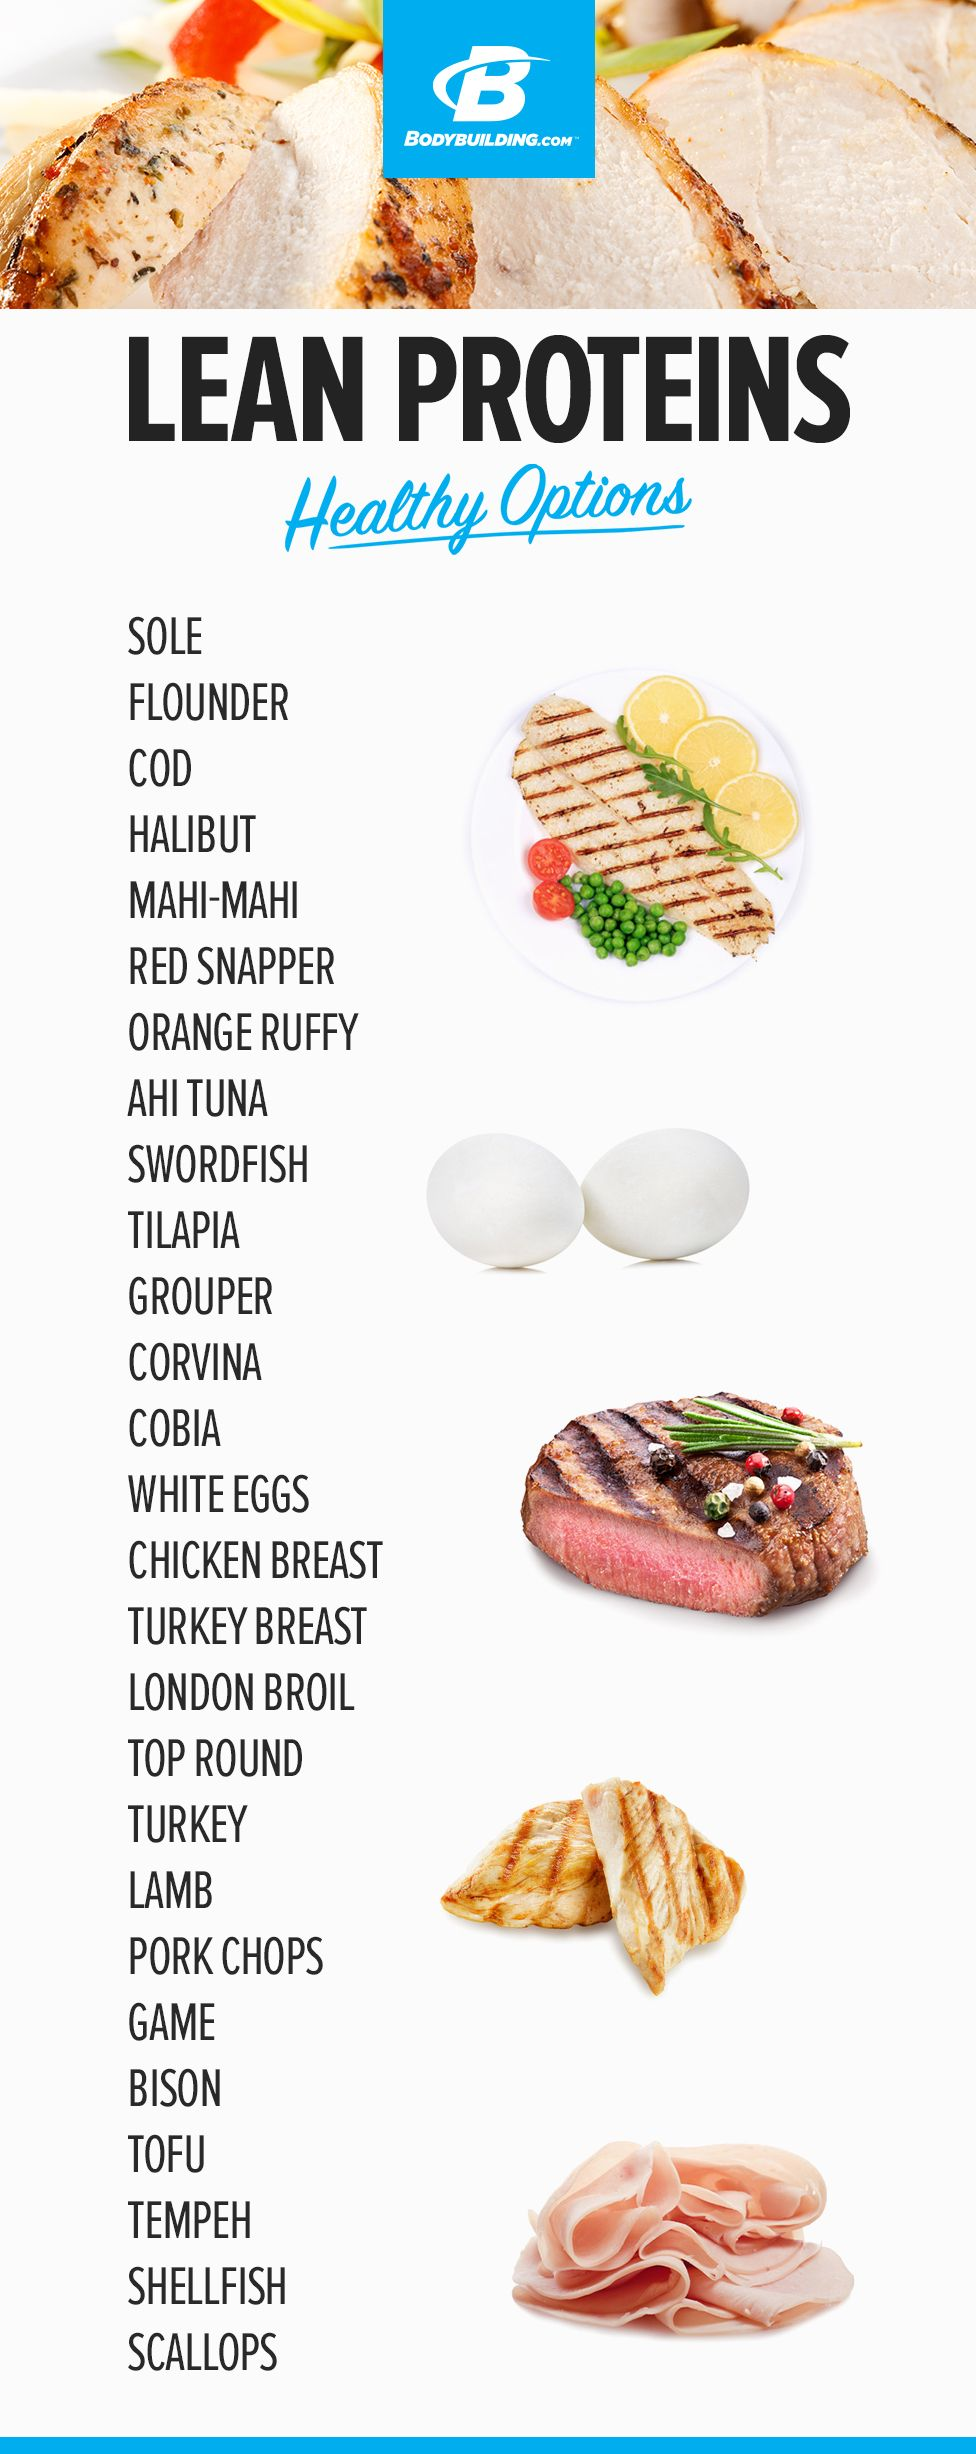 diet of all lean protein